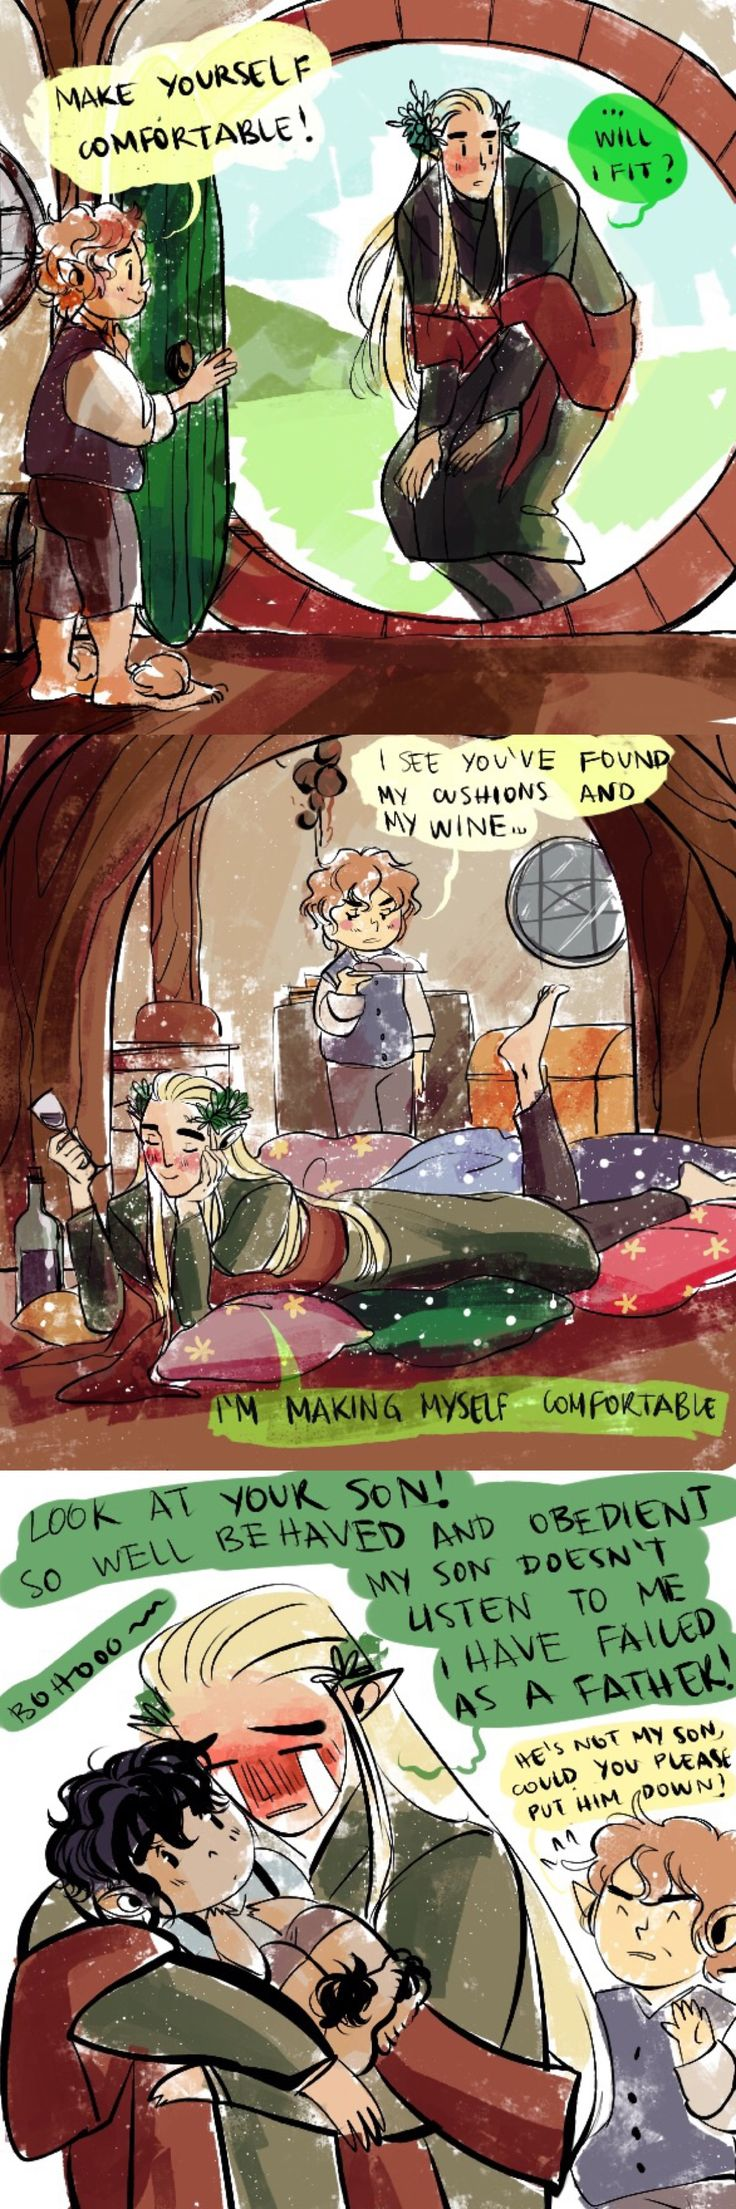 Thranduil visiting Bilbo in the Shire, being a too comfortable guest and an emotional drunk.